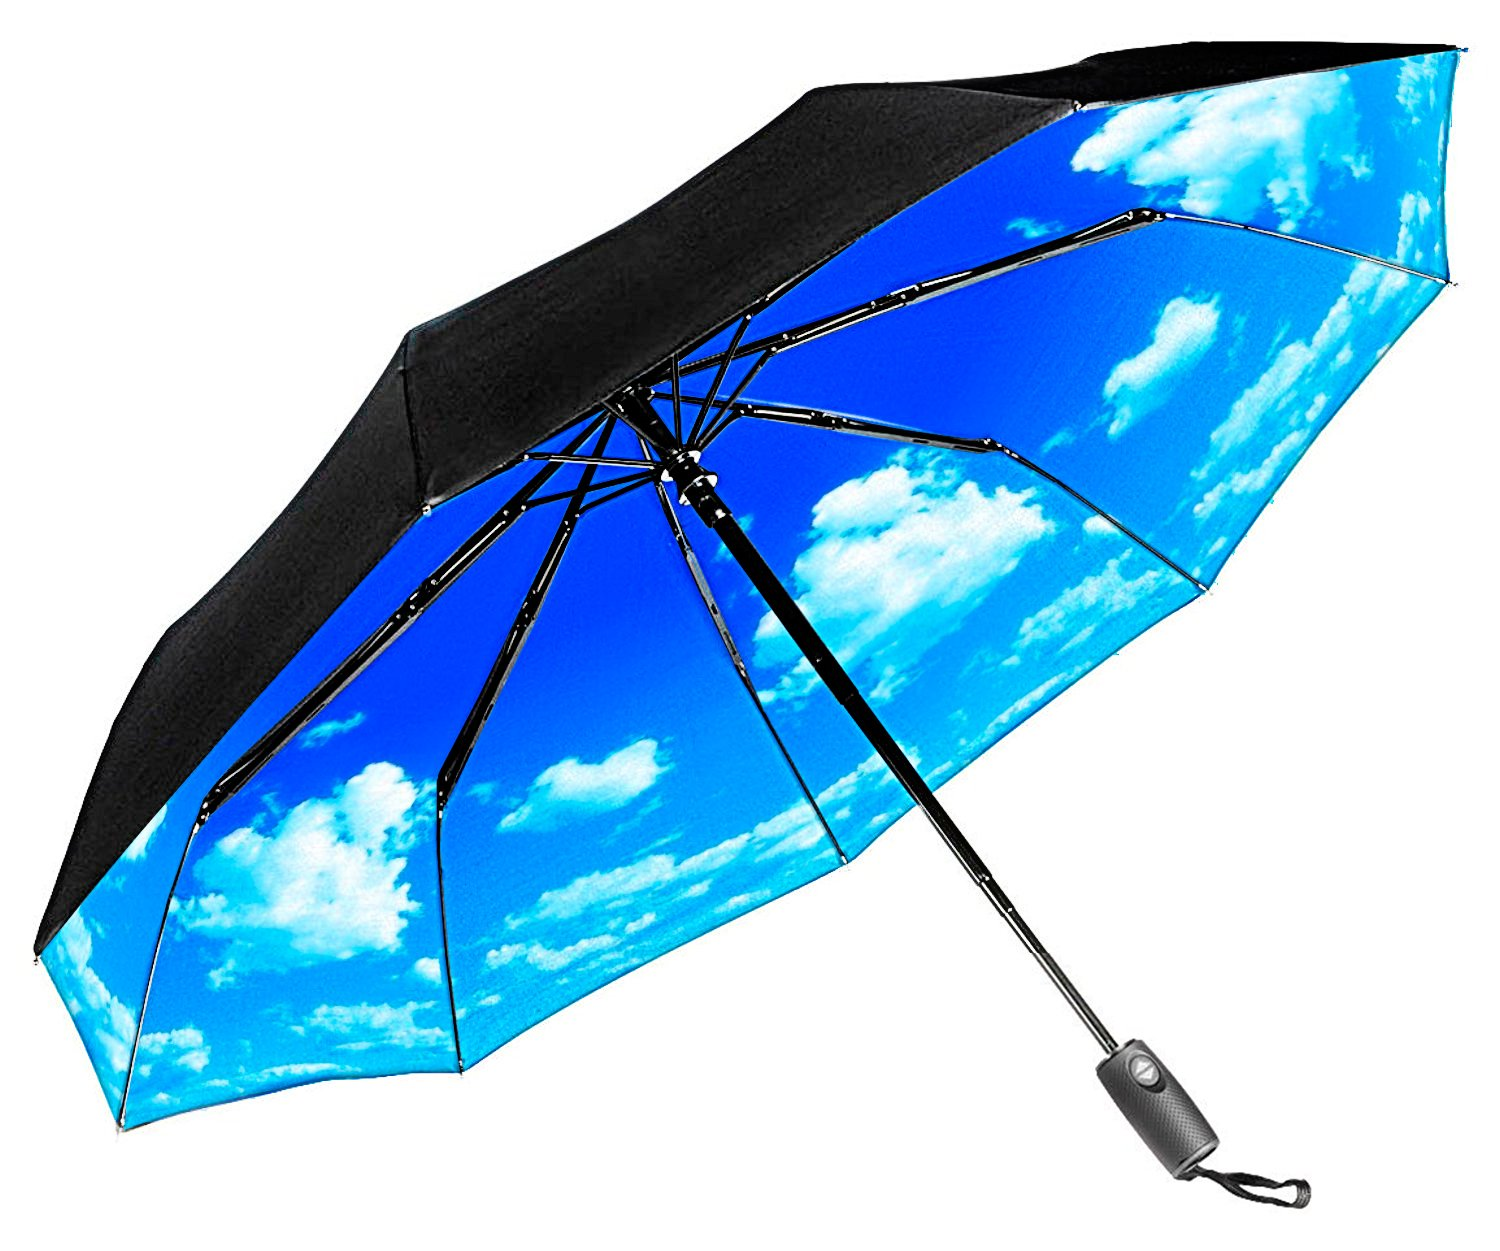 Repel Windproof Travel Umbrella with Teflon Coating (Blue Sky) by Repel Umbrella